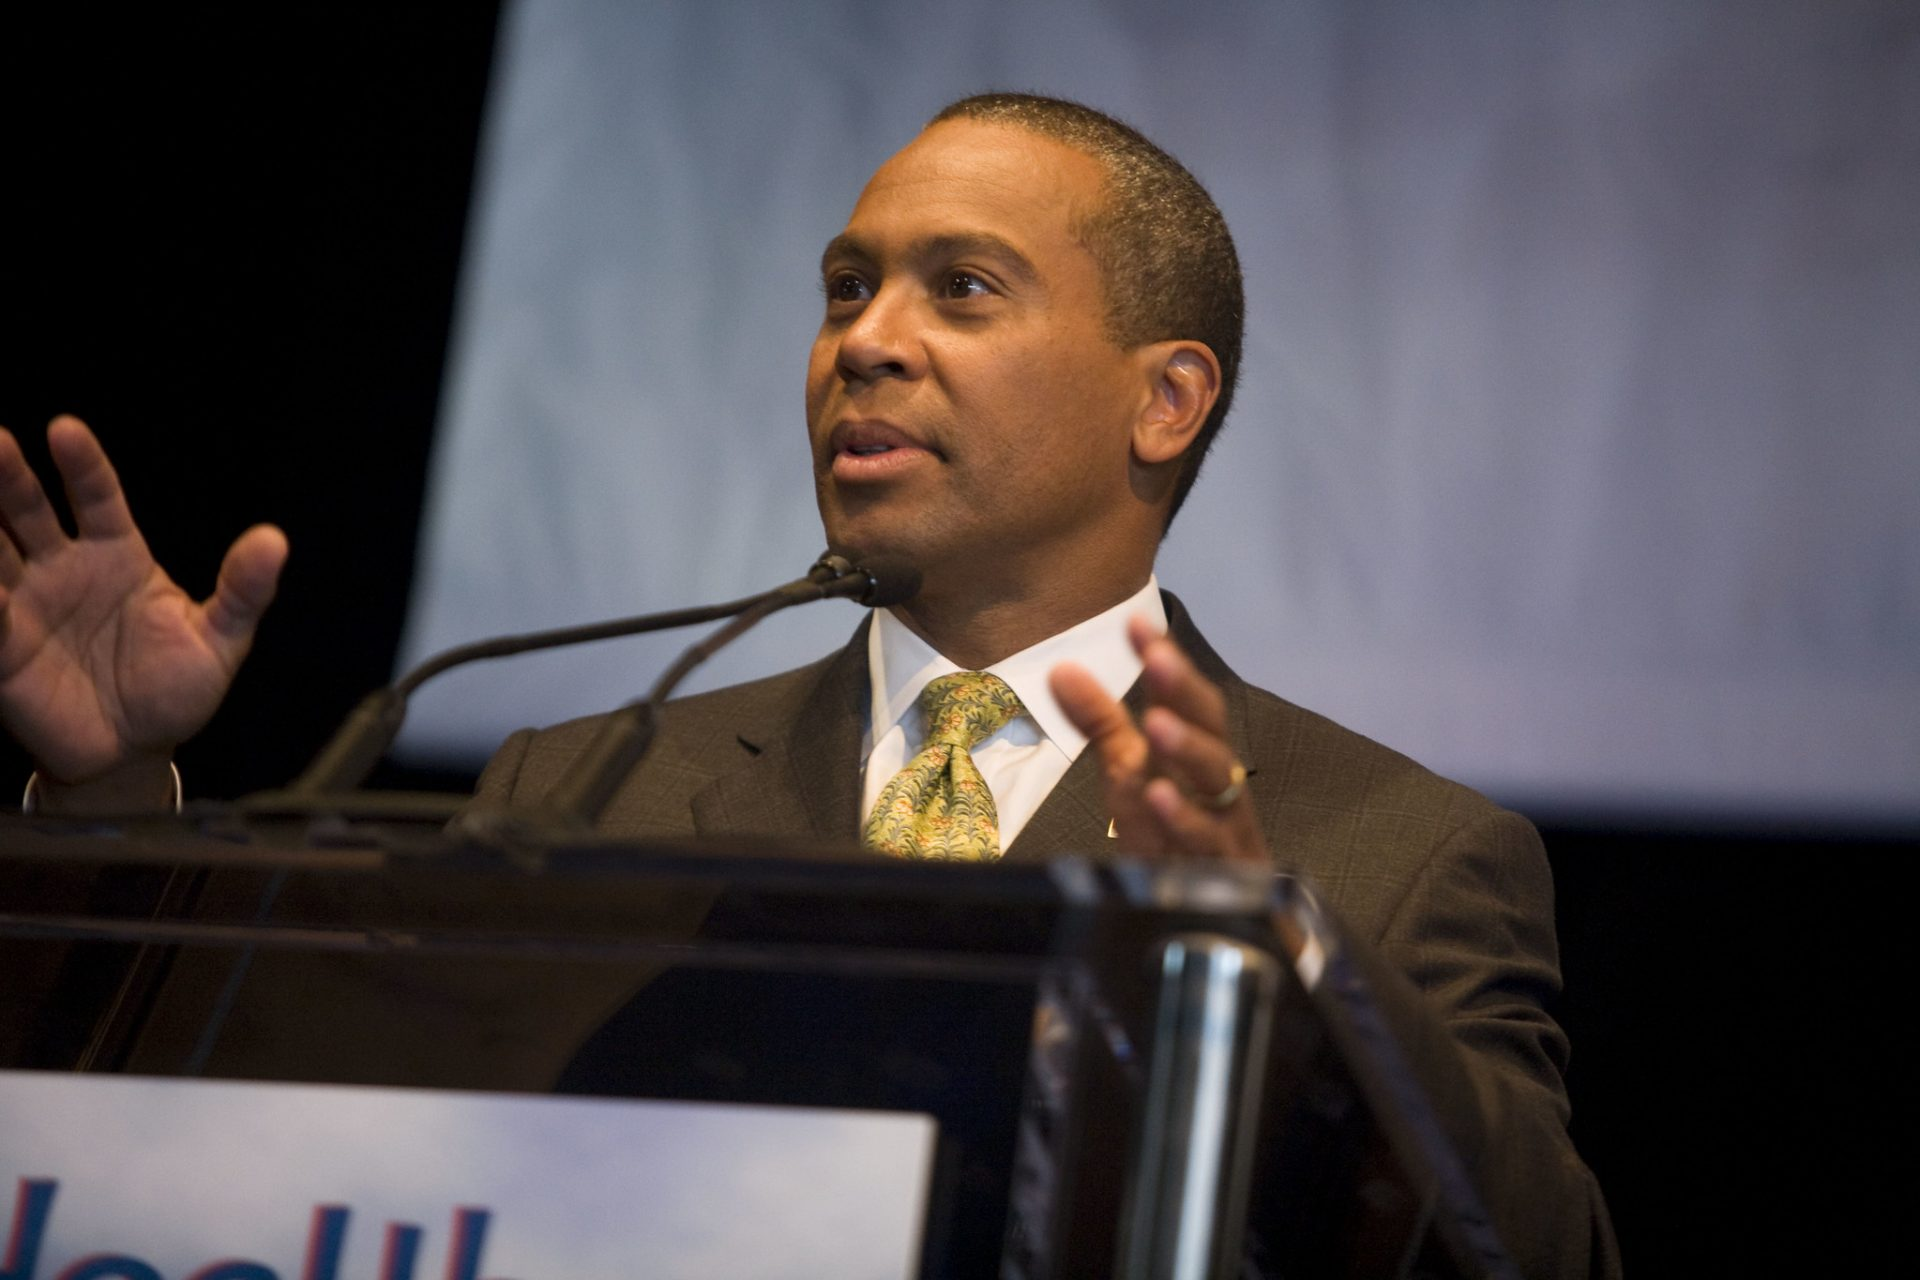 Deval Patrick: the latest presidential candidate to be uninformed on